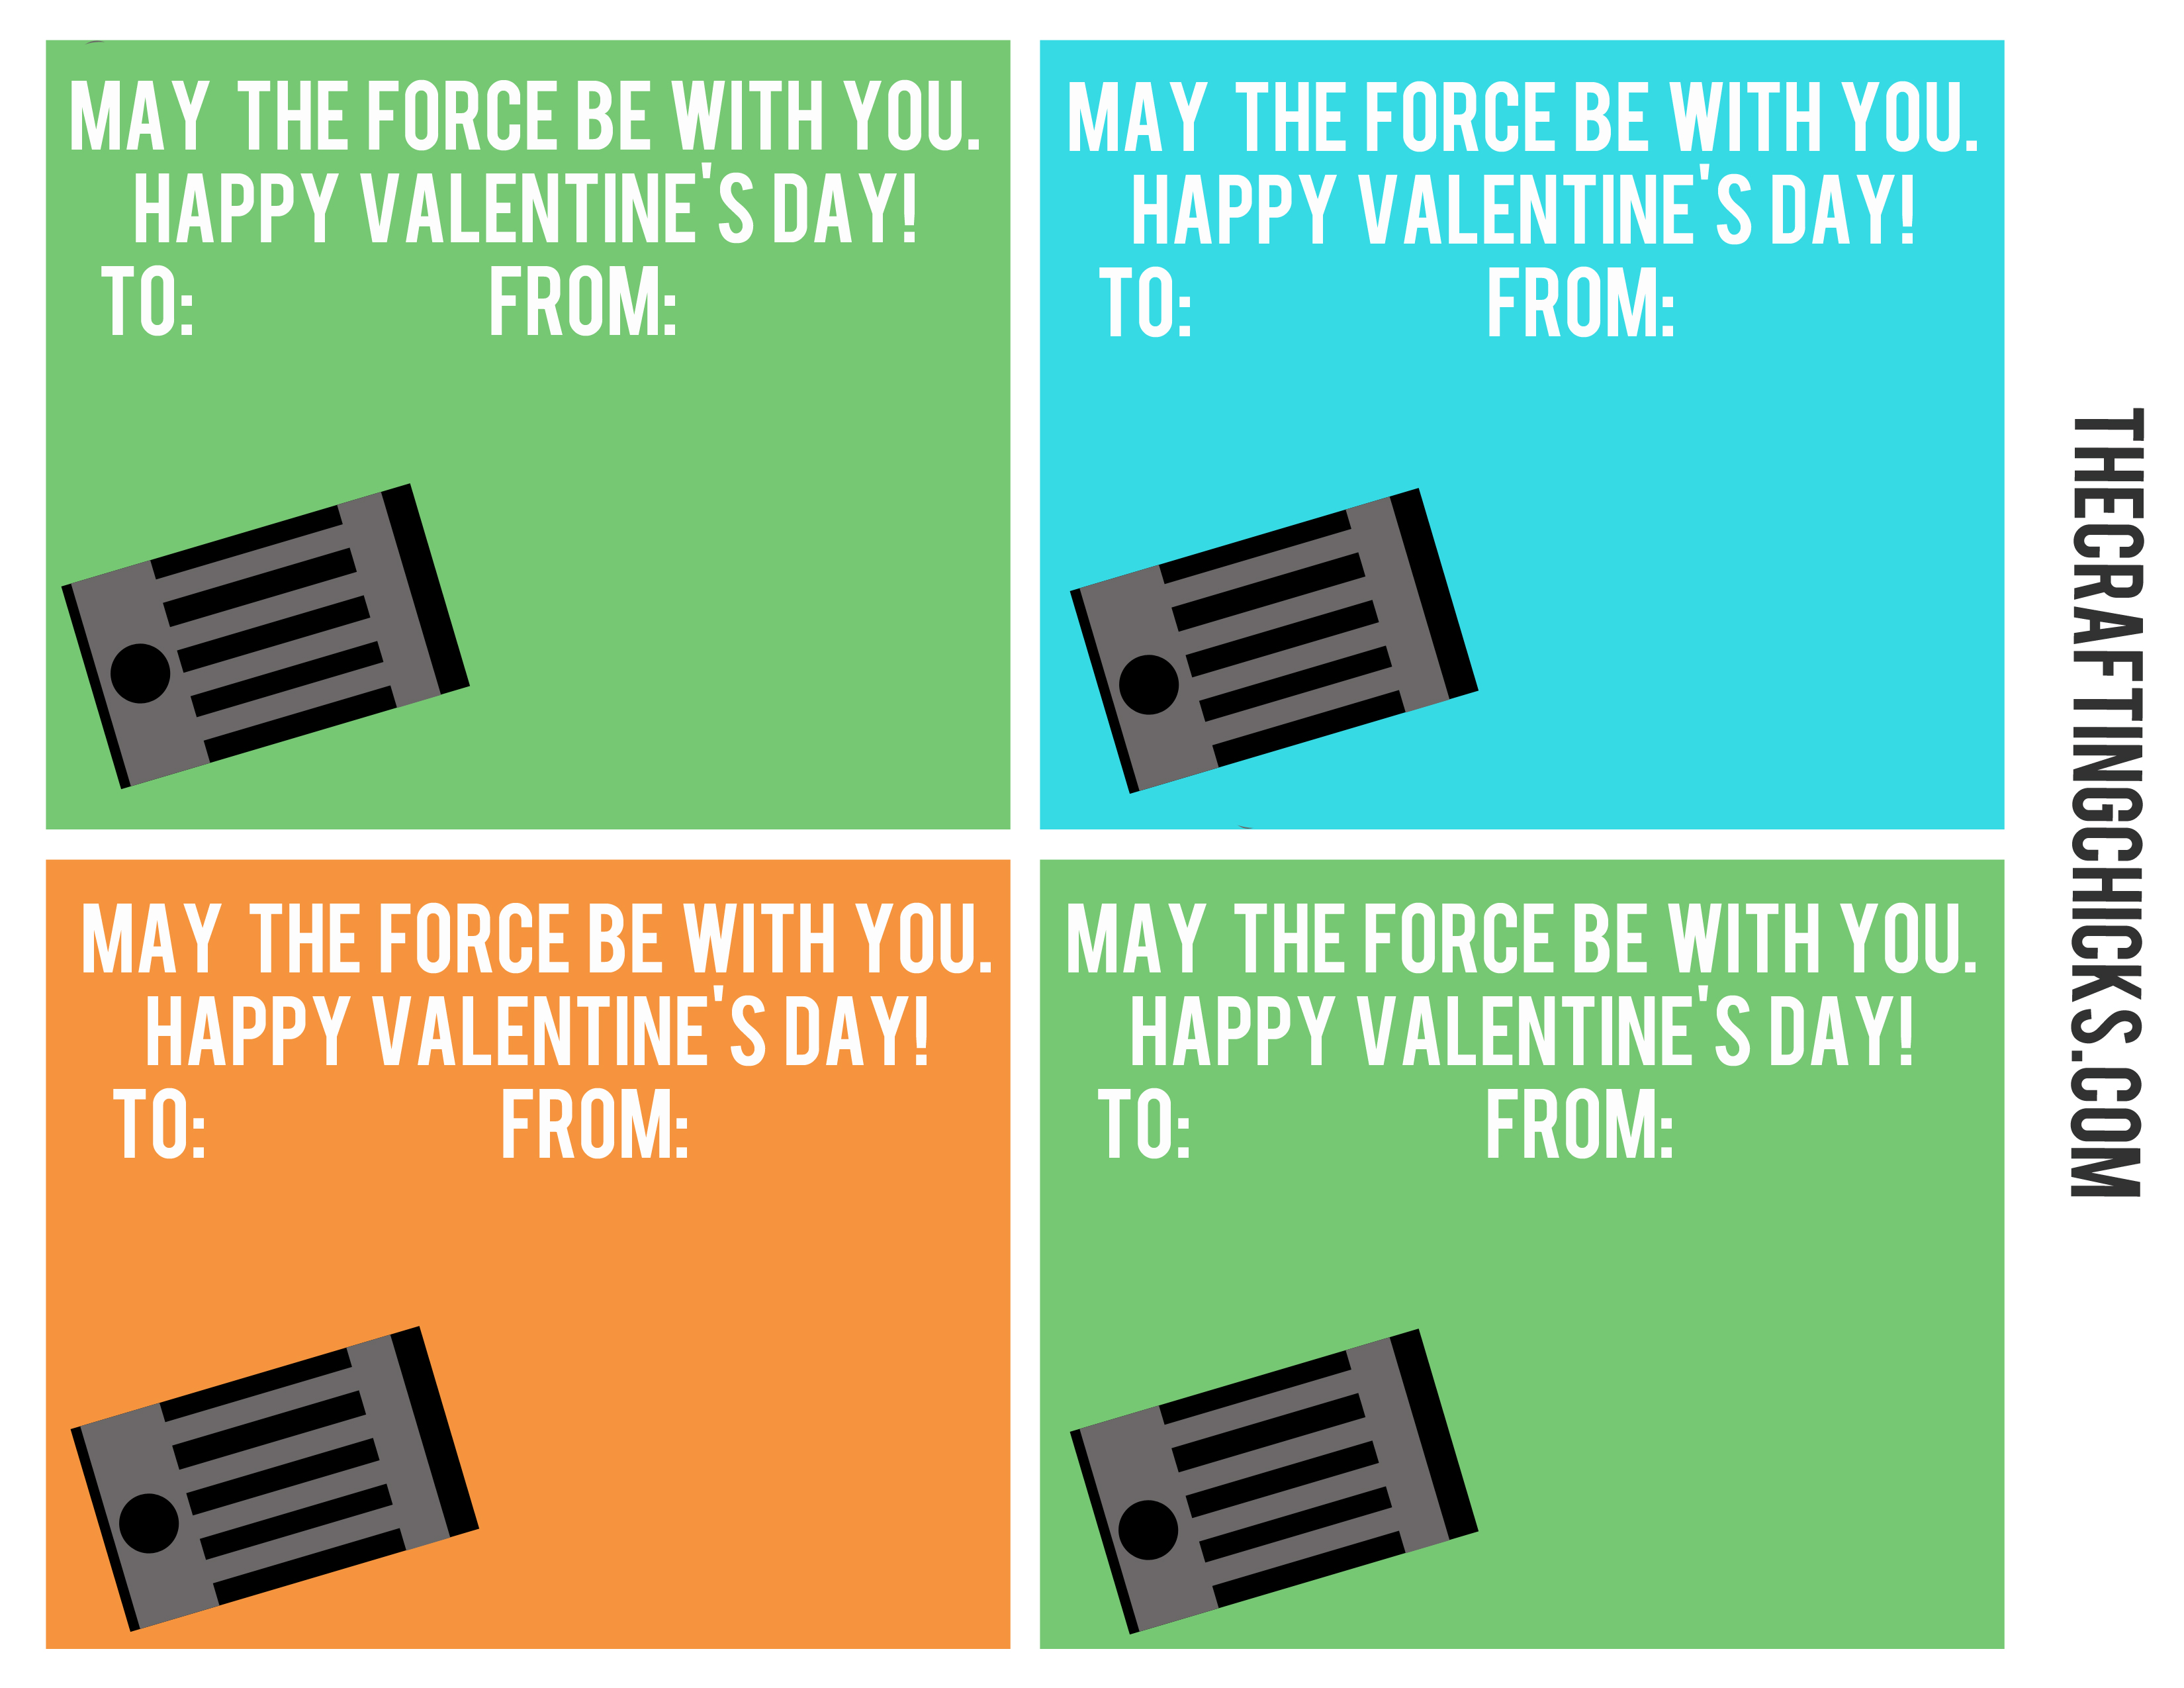 picture regarding Lightsaber Valentine Printable titled Star Wars Lightsaber Bubble Wand Valentines - The Producing